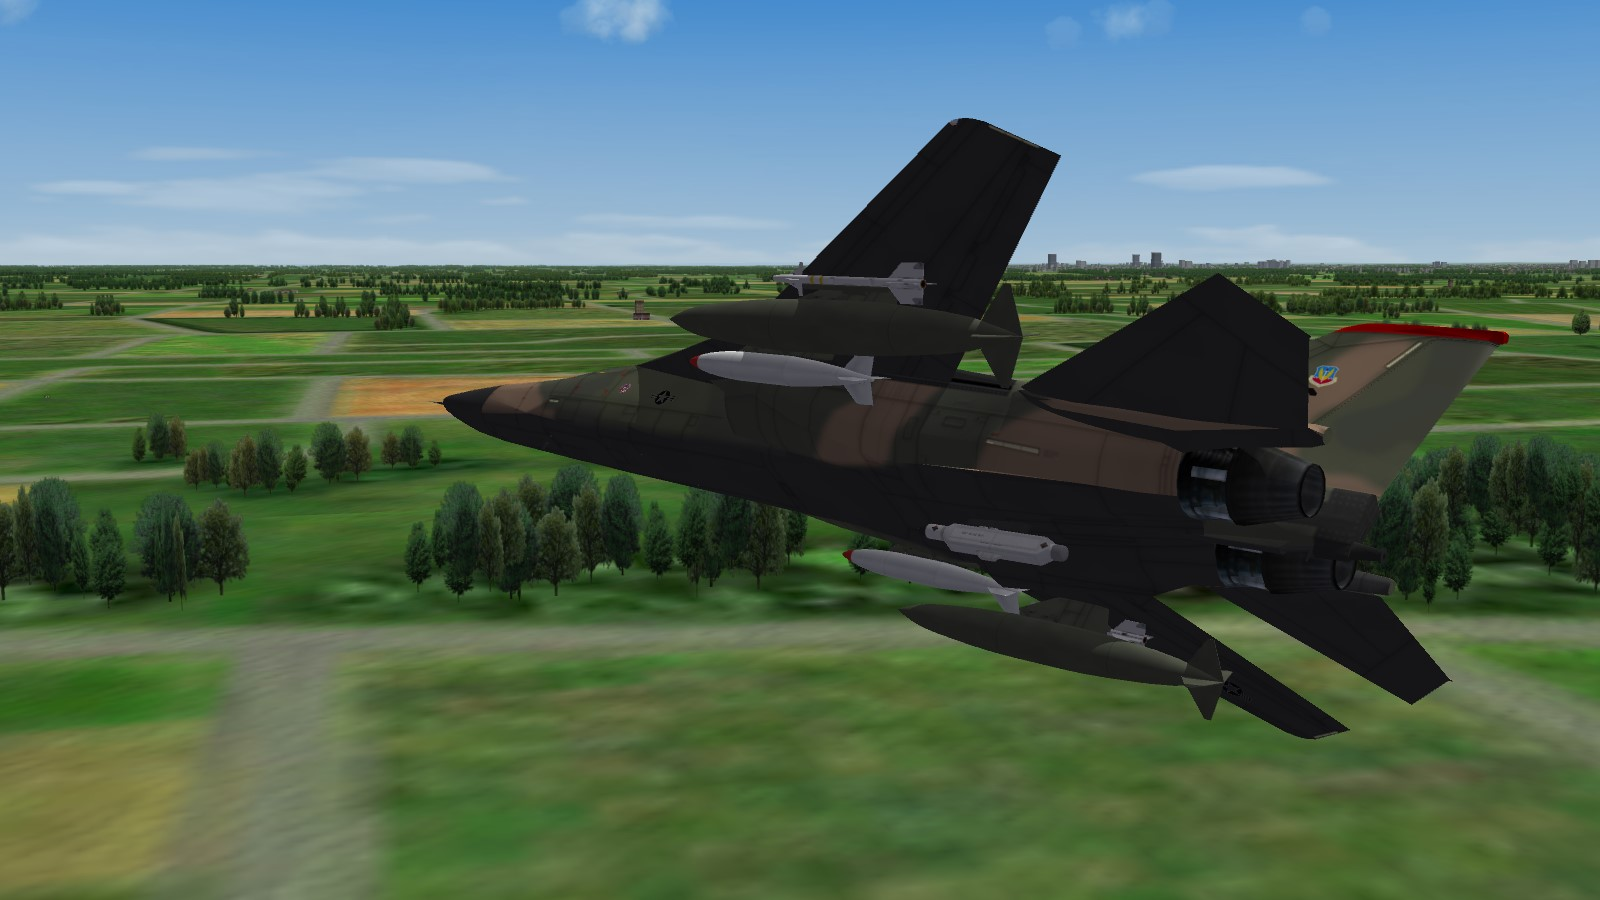 Has there ever been a flight sim with nuclear weapons? - SimHQ Forums